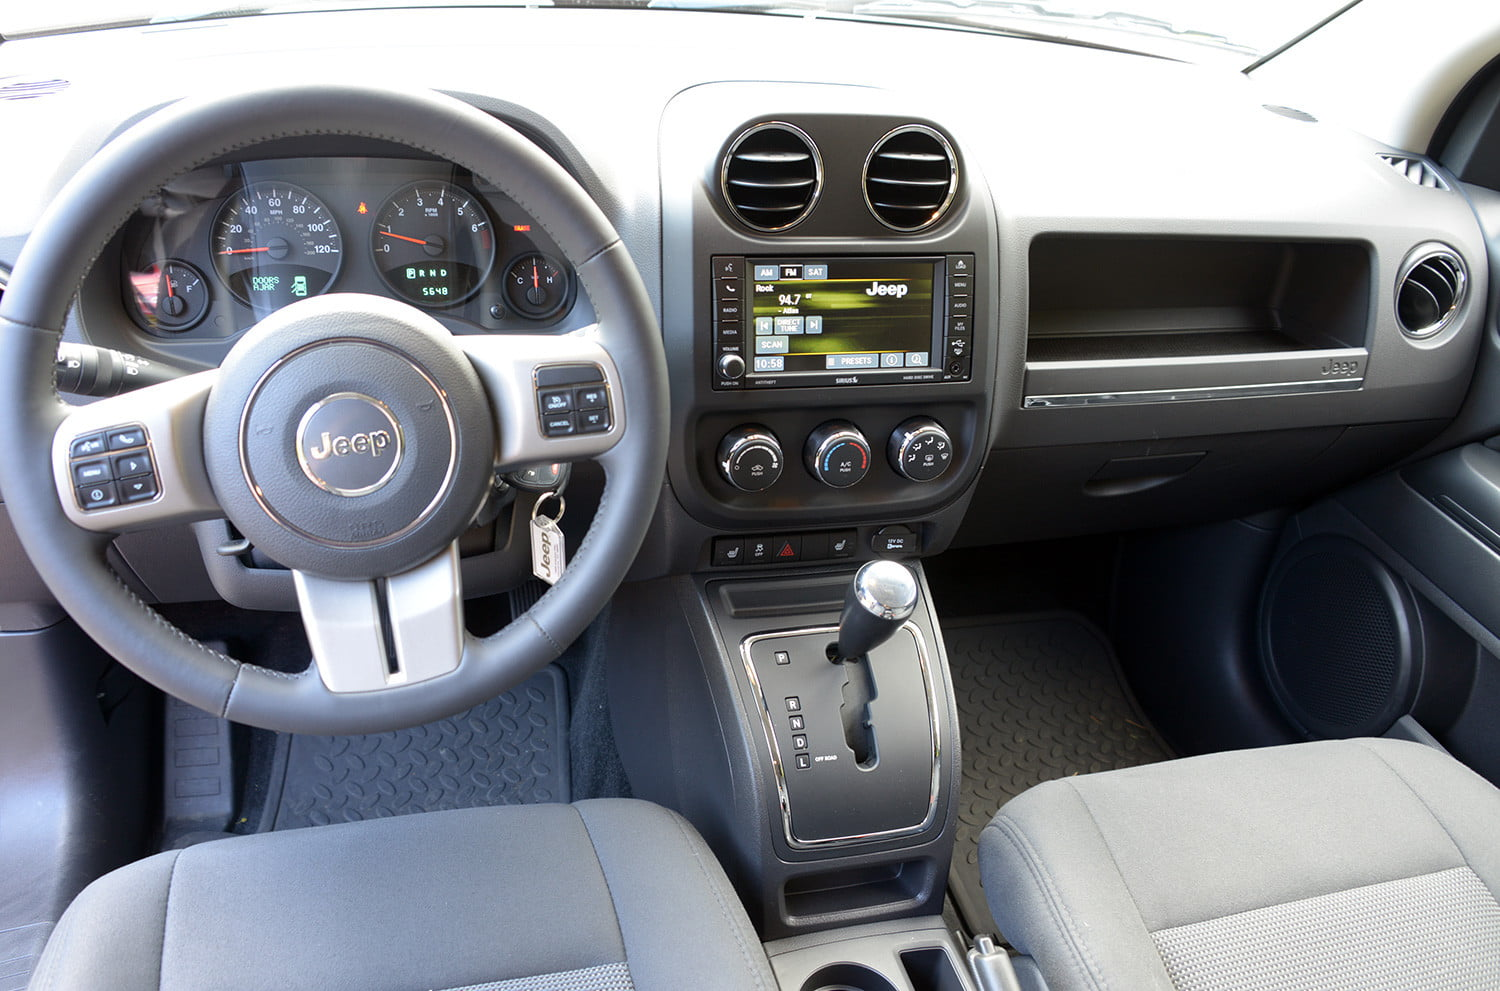 Jeep compass 2013 review